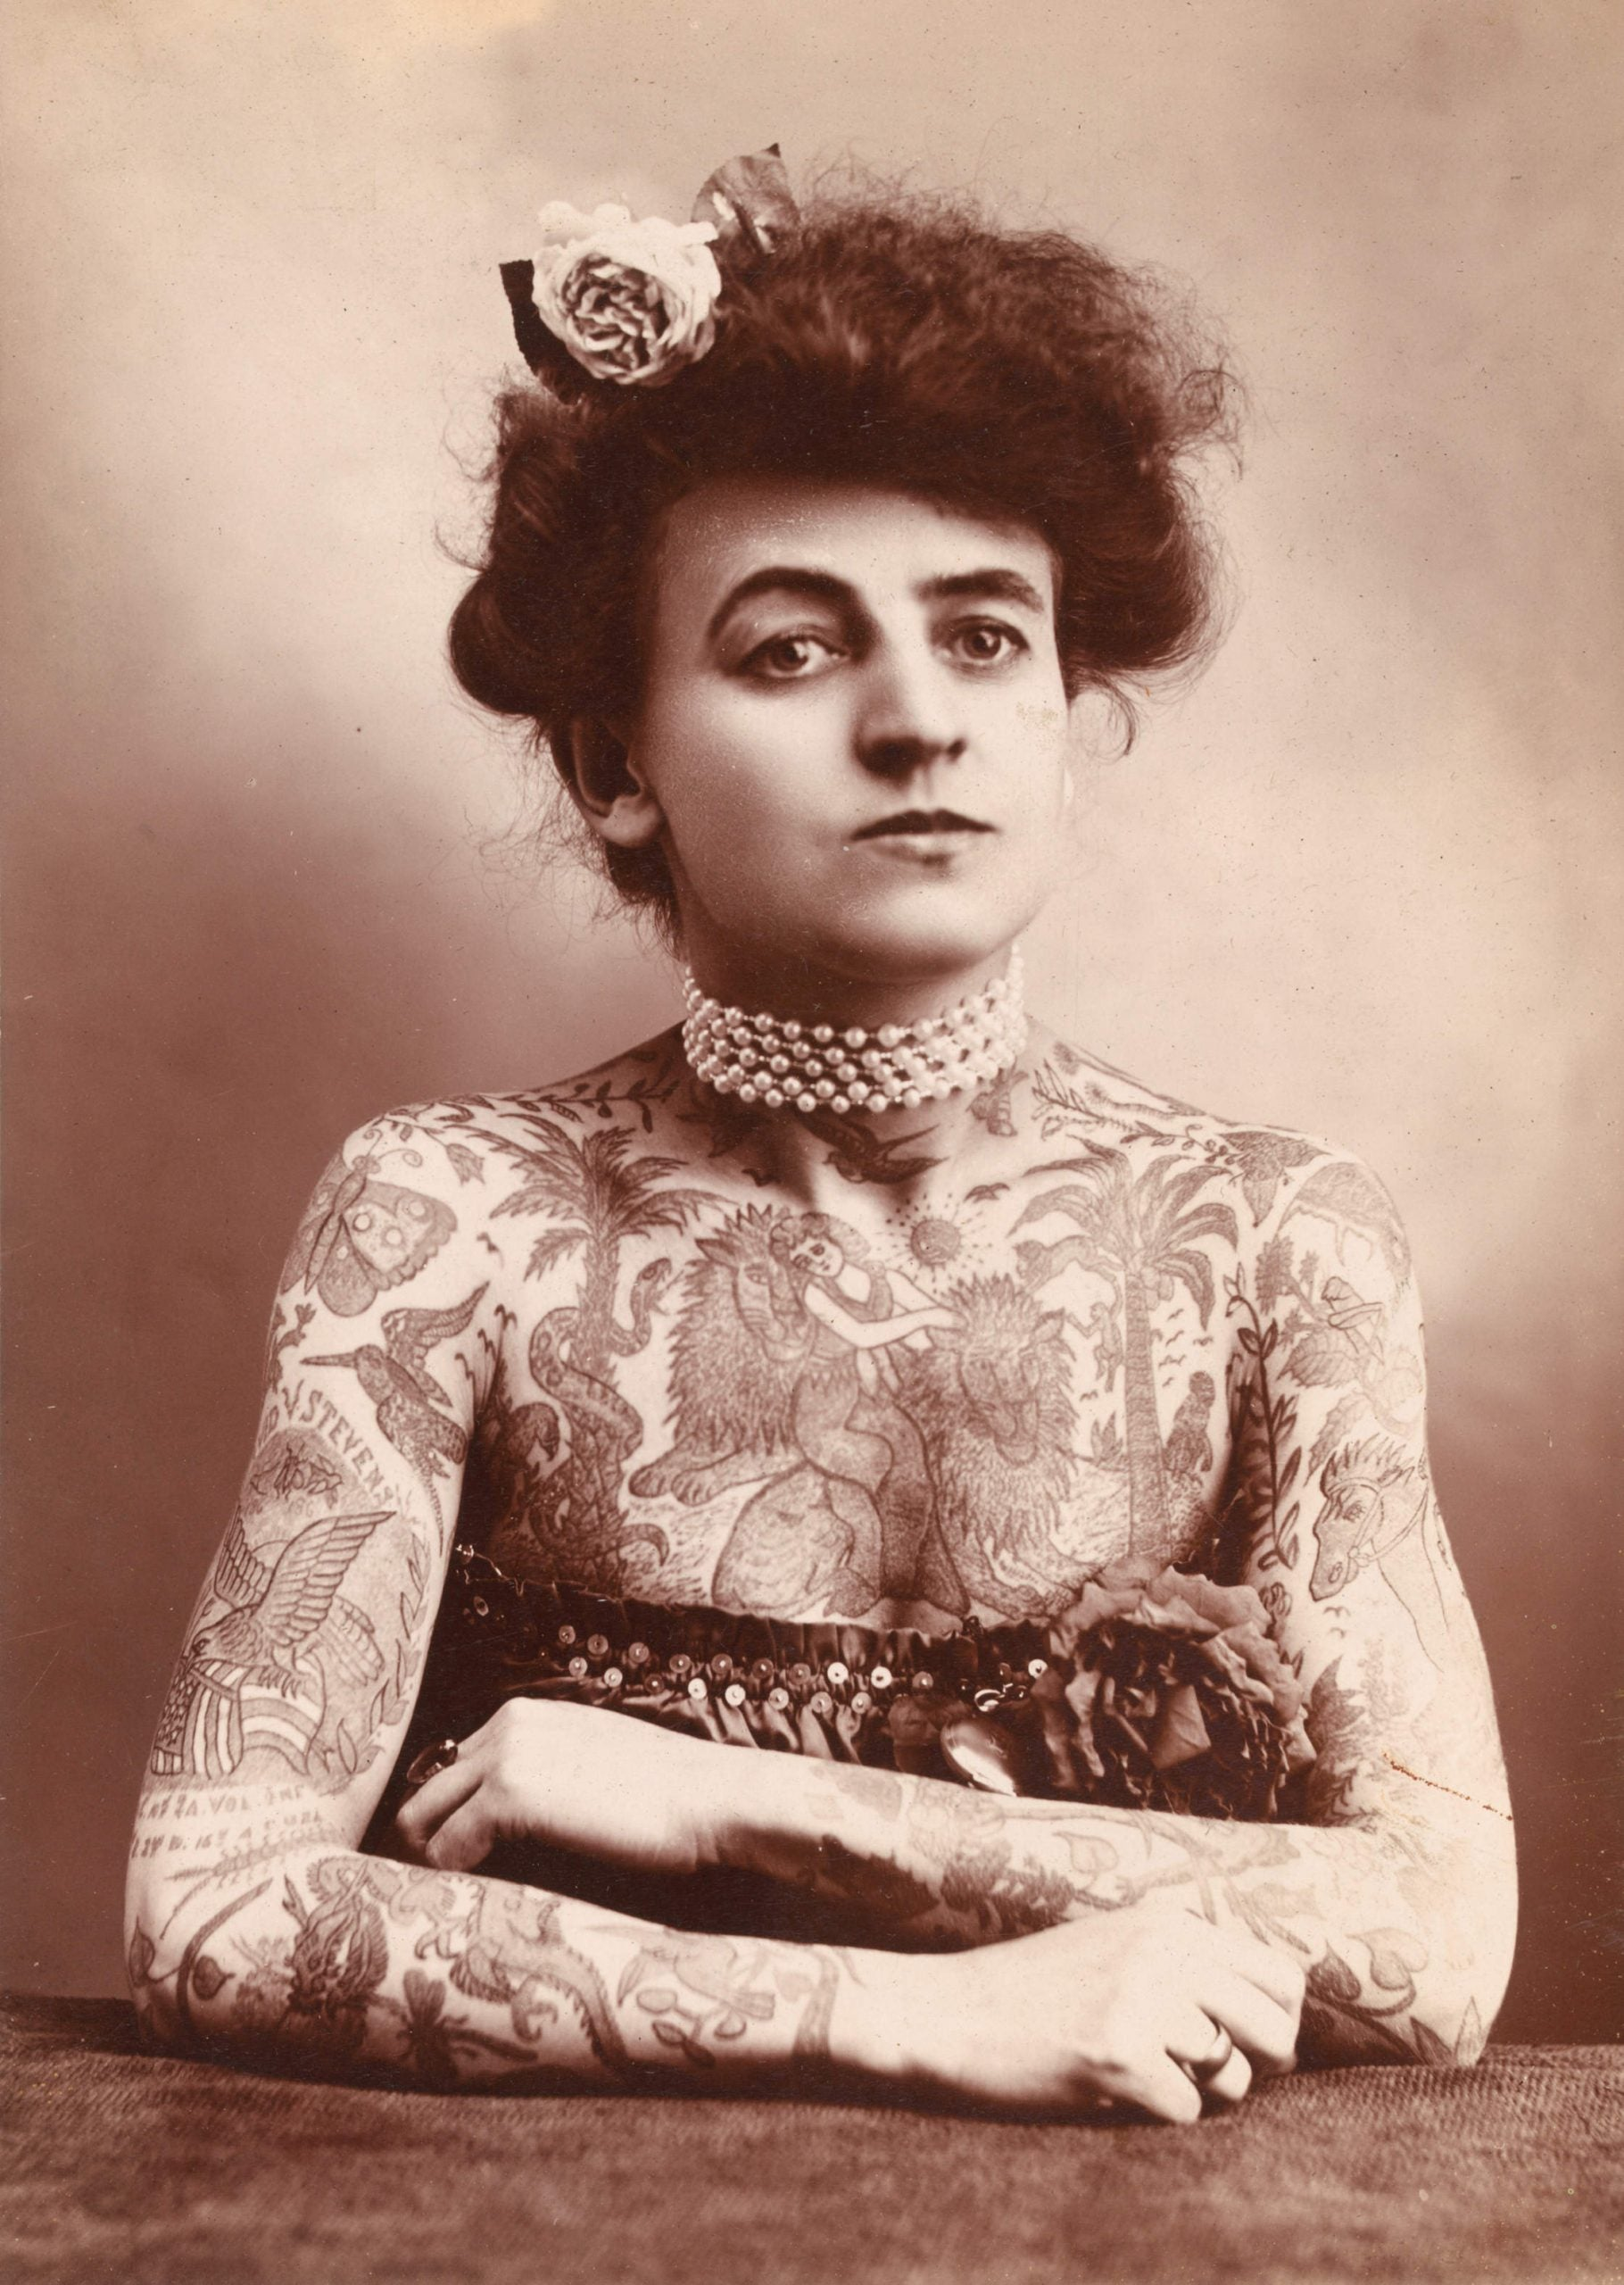 Hearts on their sleeves: what drives us to get – and often regret – tattoos?